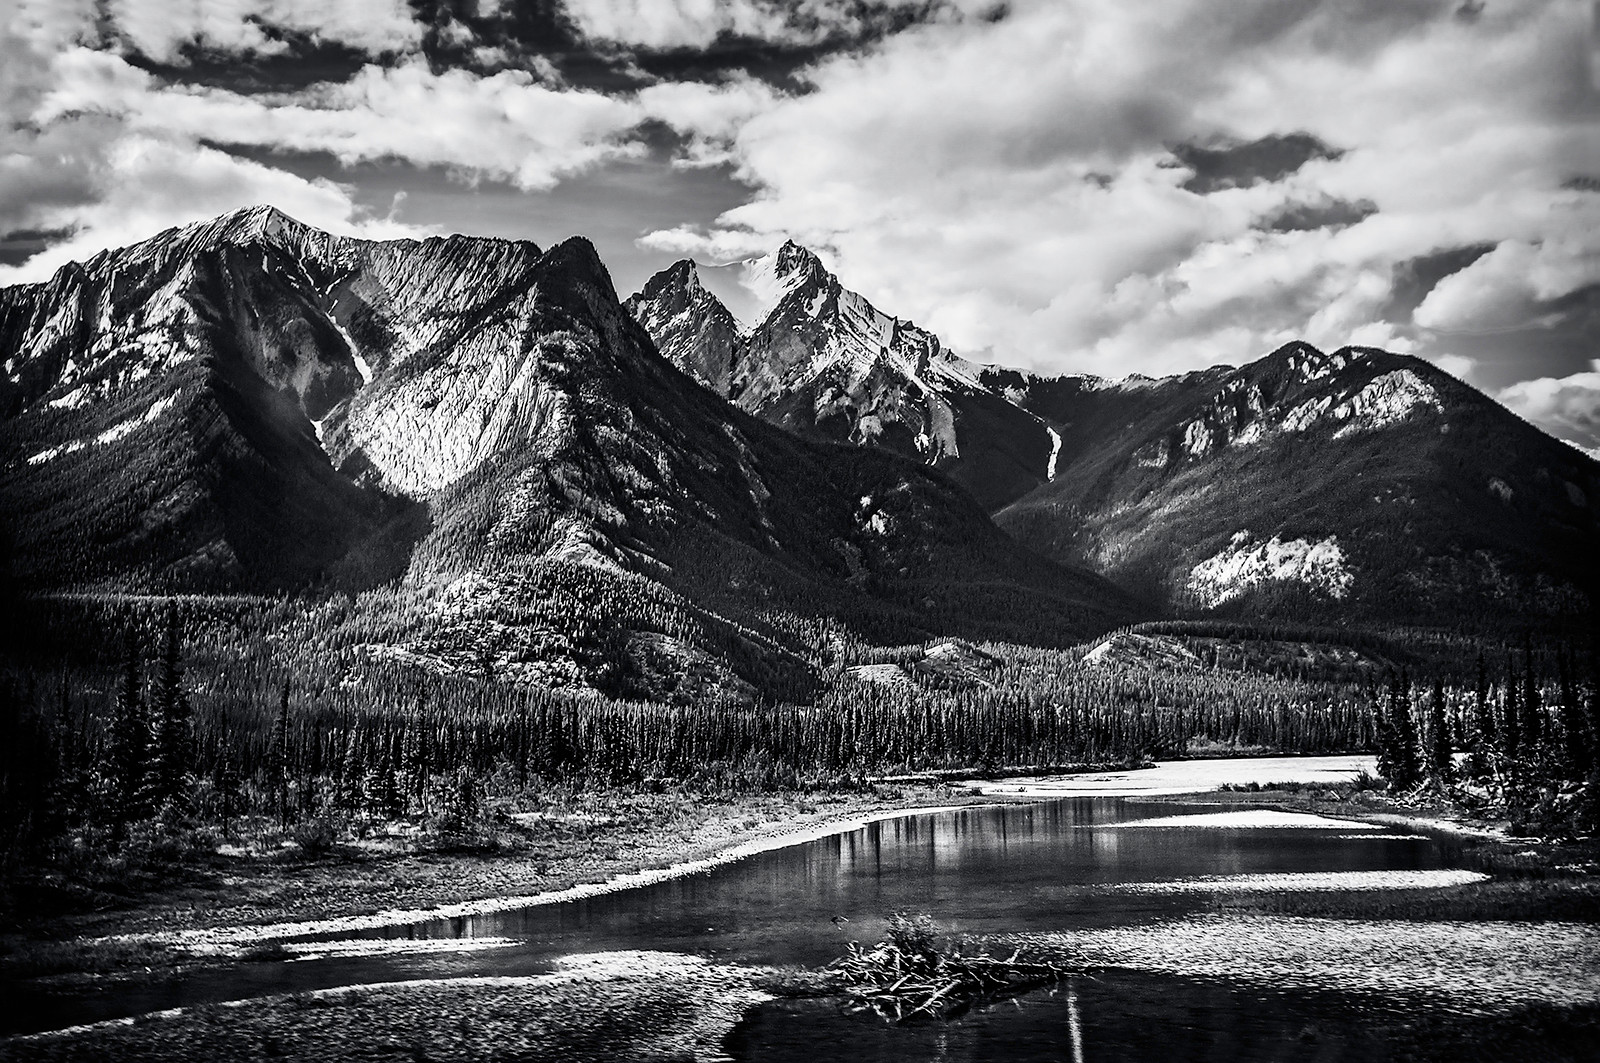 MONO - The Rockies by Eileen McCausland (8 marks)